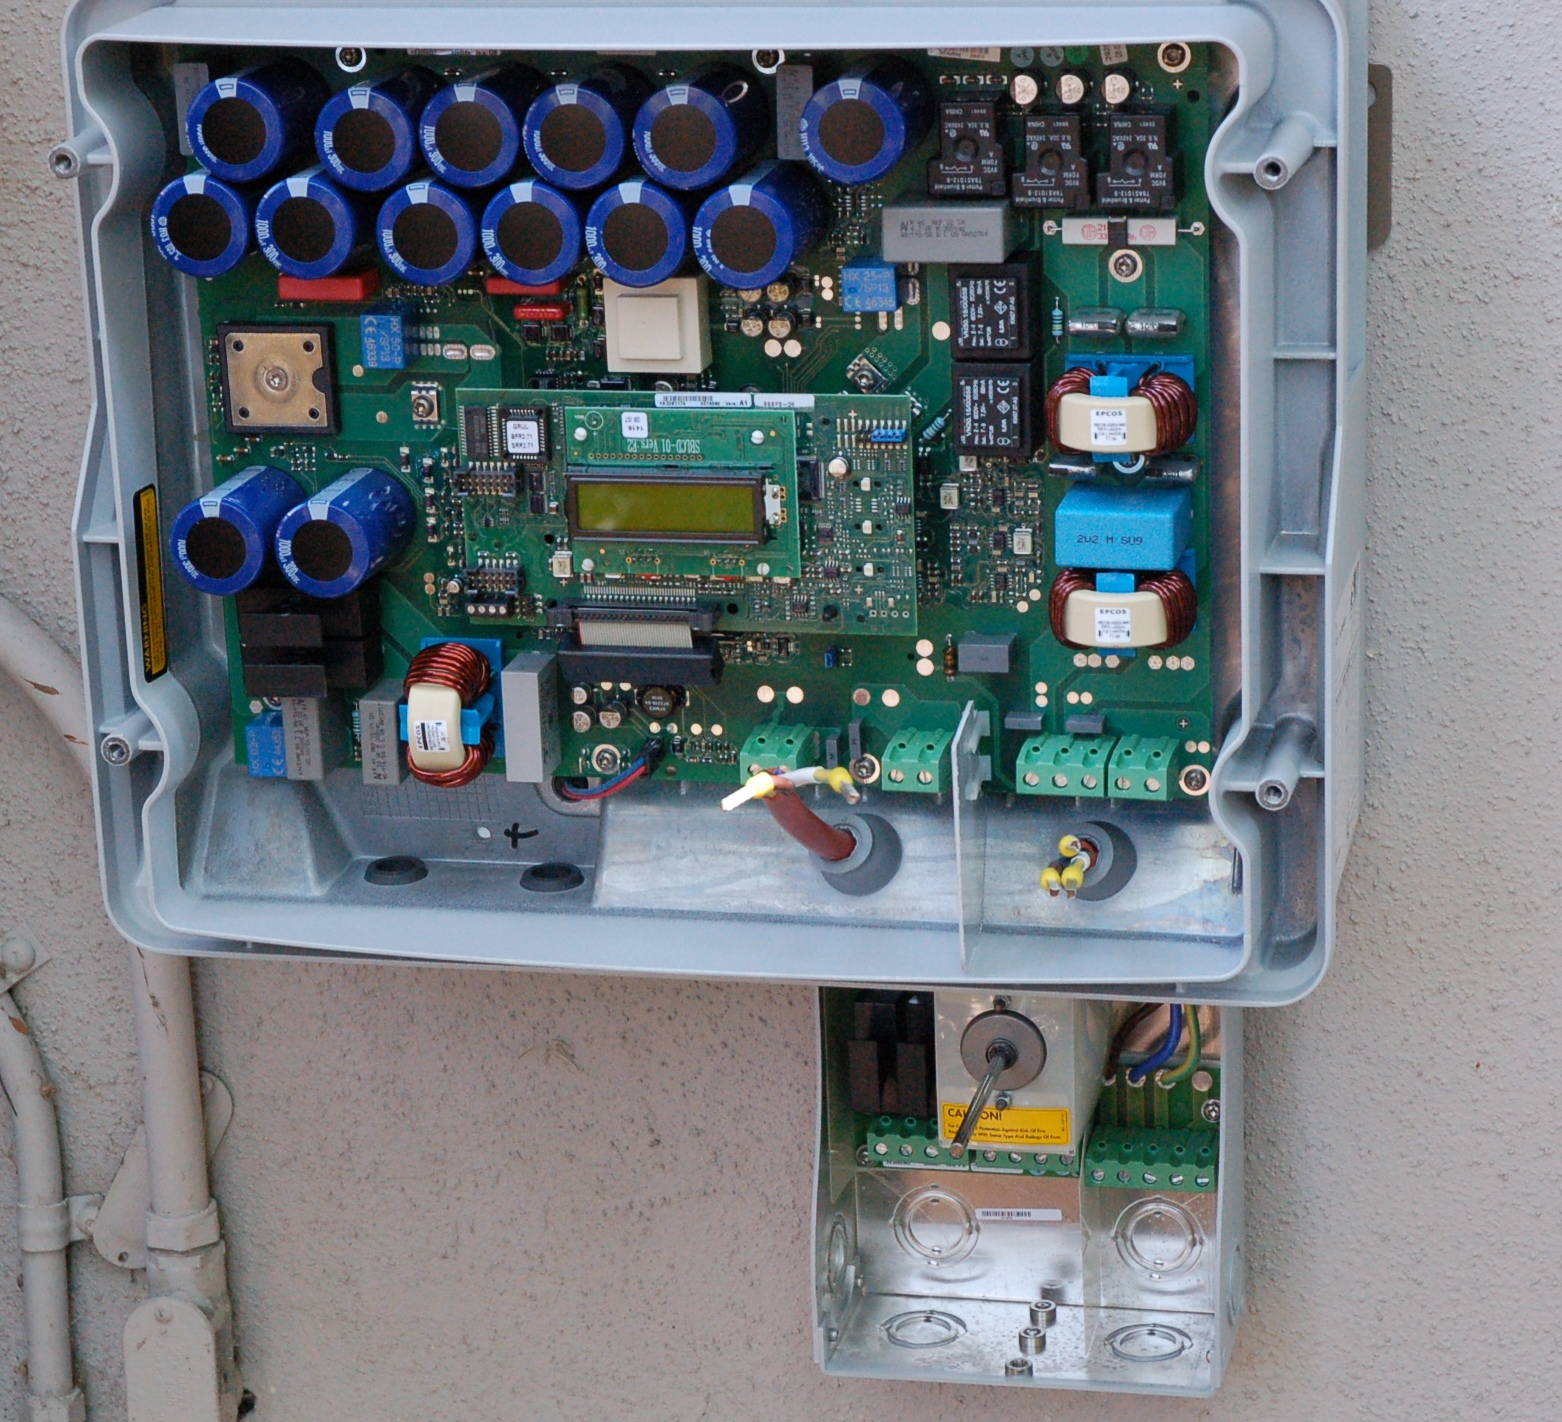 Solar Inverter Wikipedia Light Switches In A Mobile Home Electrical Diy Chatroom